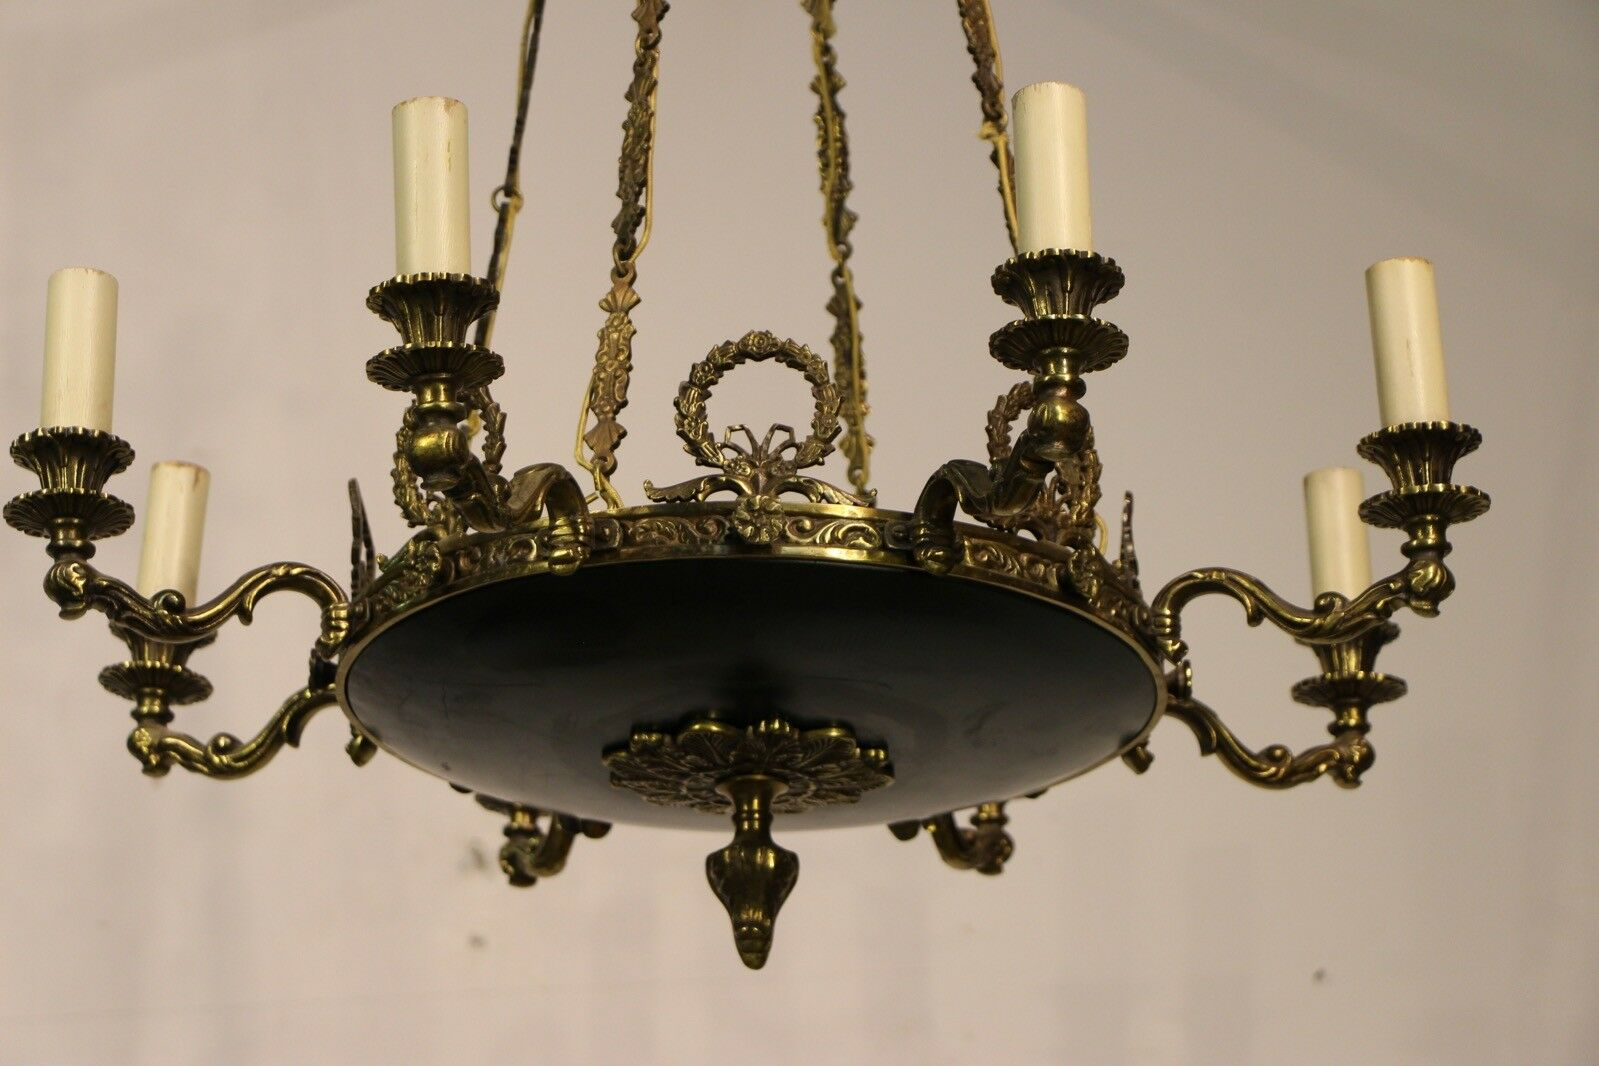 Antique vintage brass Dutch chandelier five arms ornate dragon head scrolls 1920 8